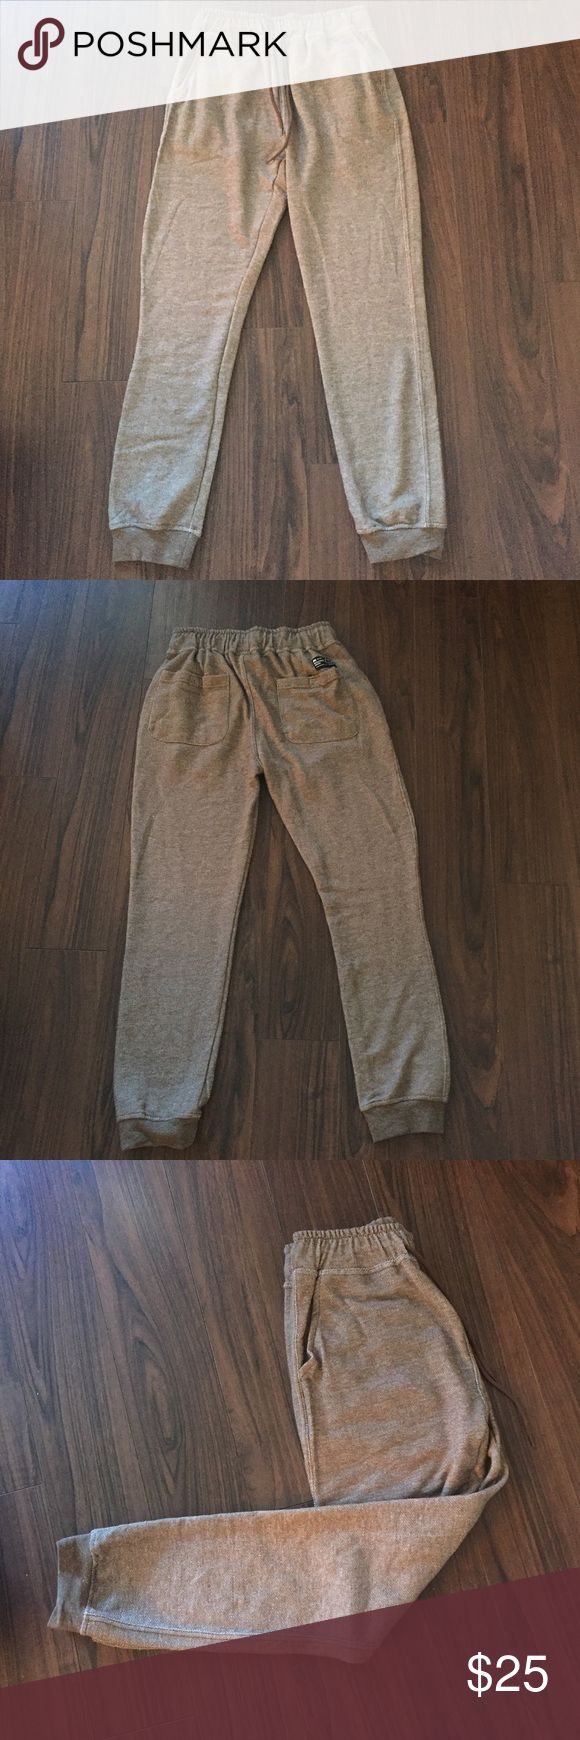 Light Brown Joggers Awesome Beautiful Giant Men's Joggers - Size Small. Never worn - new without tags. Not Pac Sun - tagged for exposure and vibes ✌️️ PacSun Pants Sweatpants & Joggers